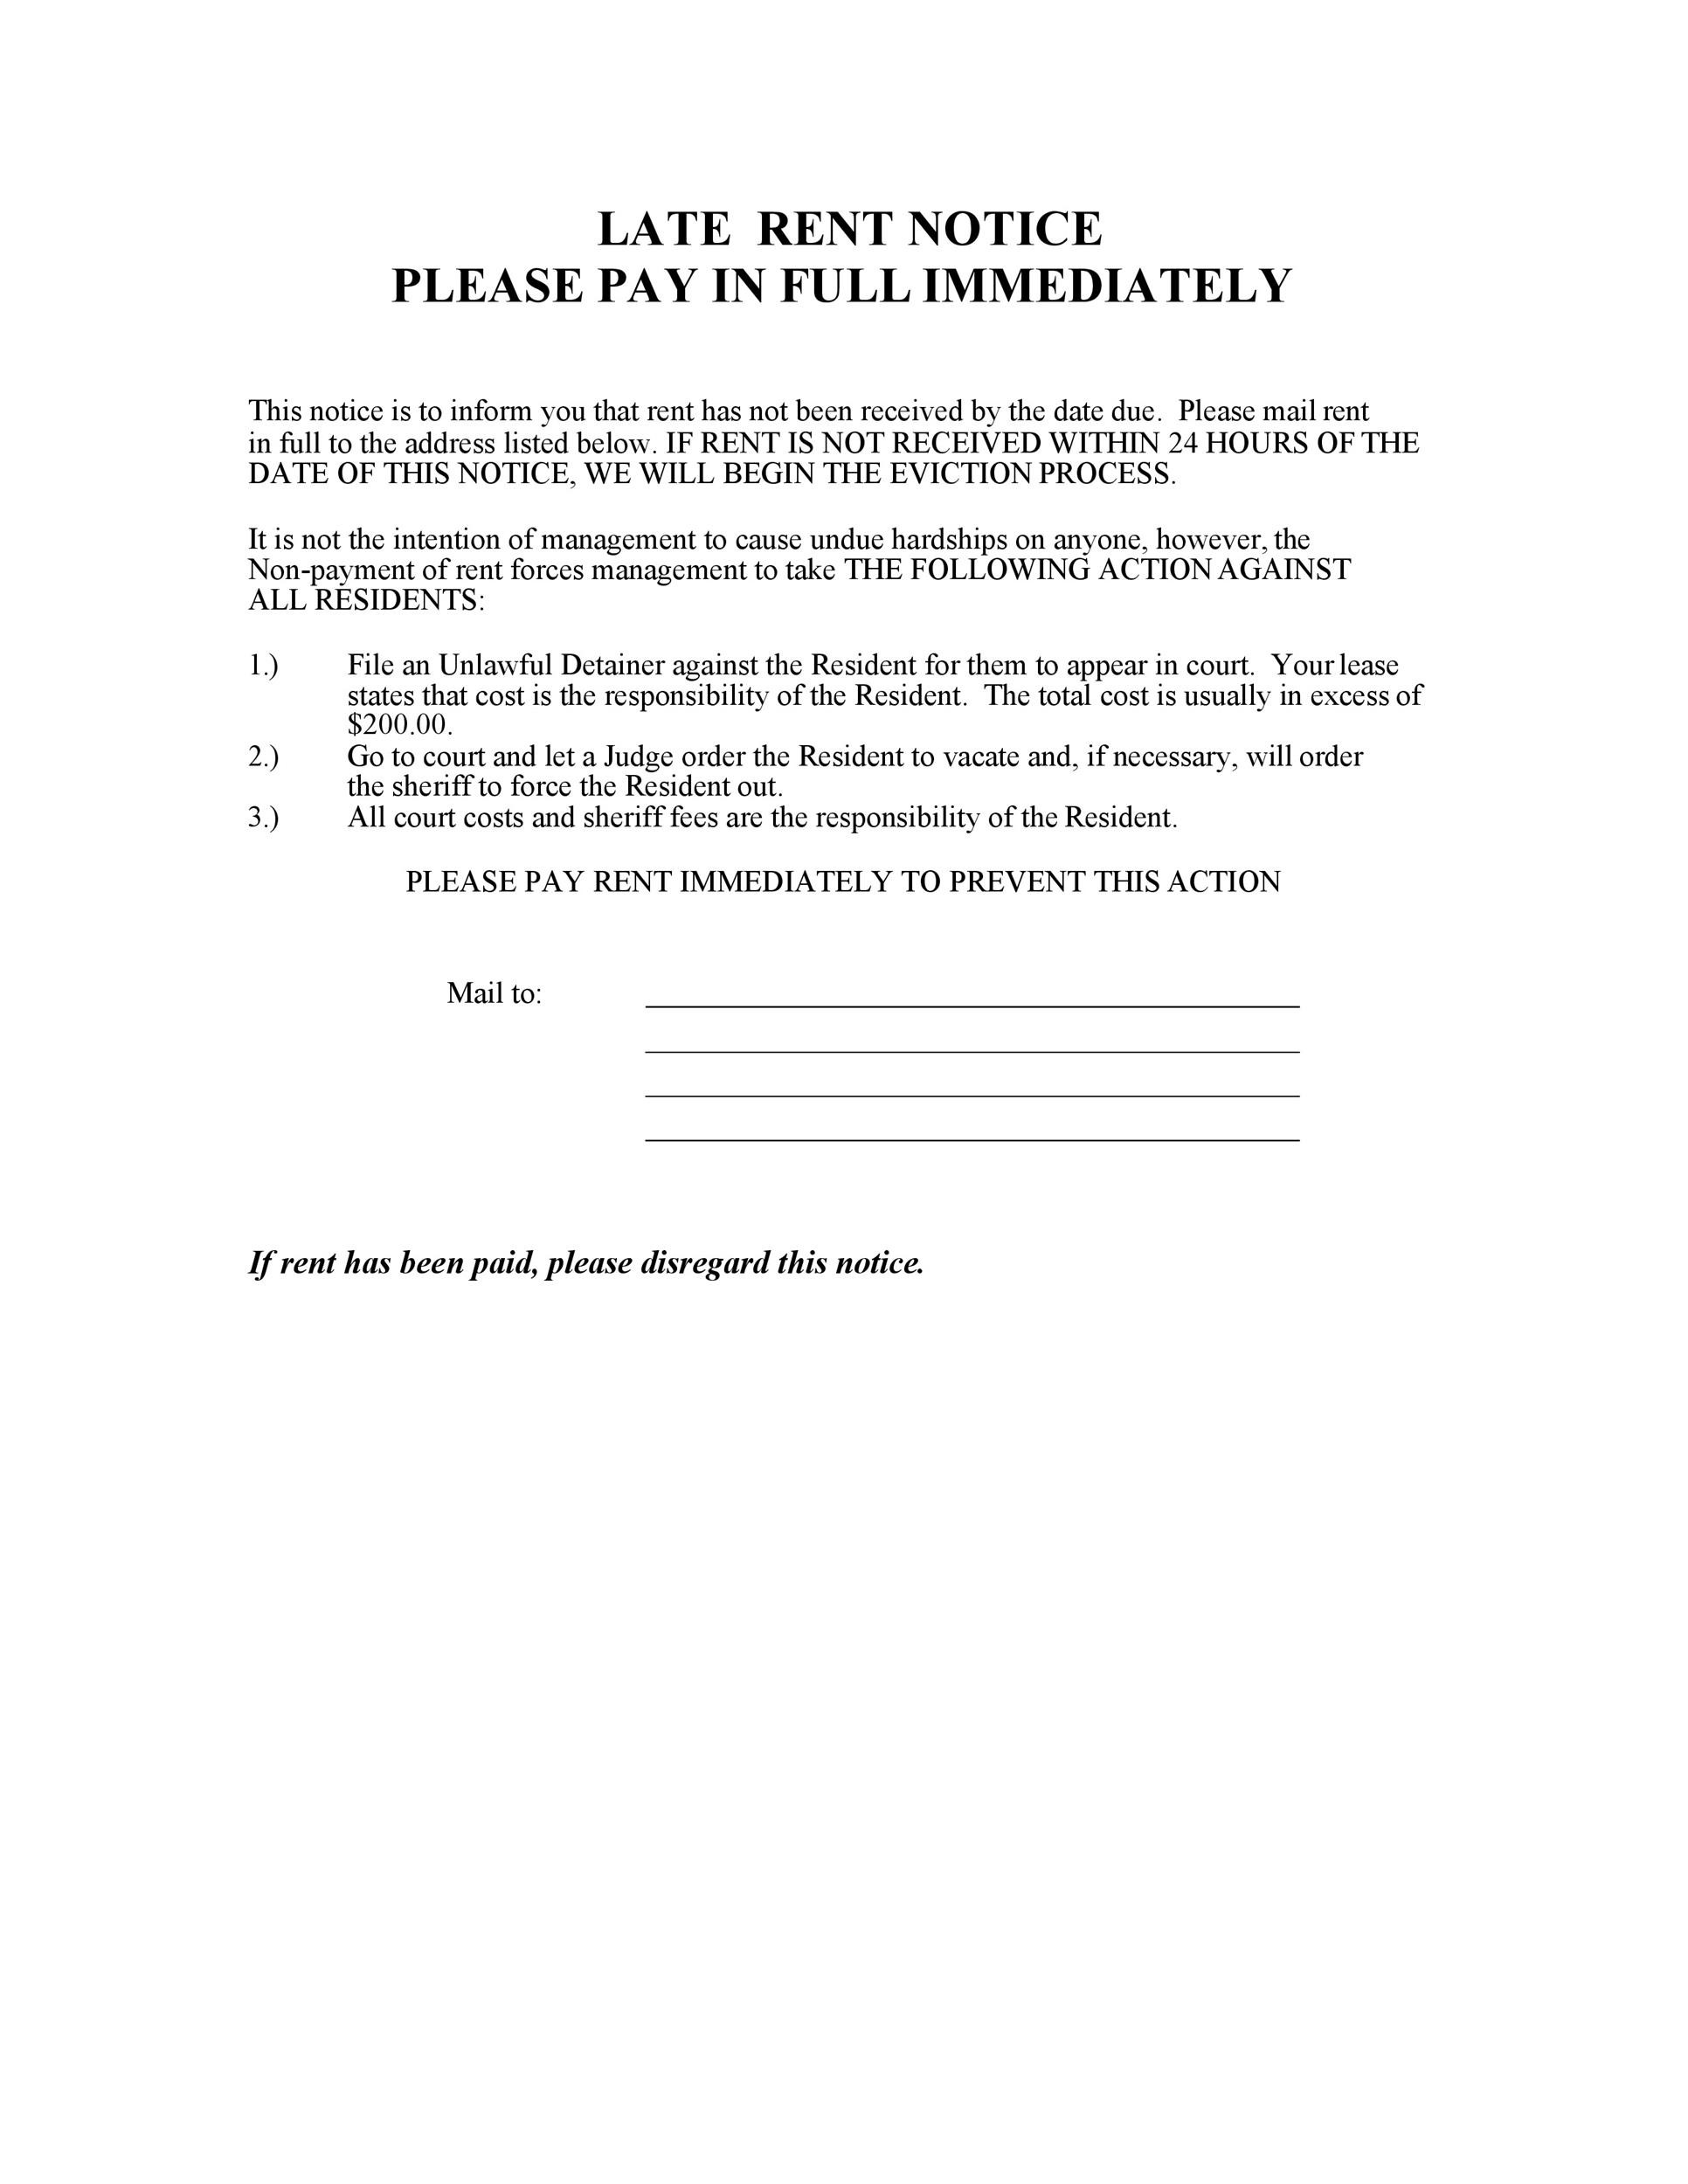 Free Late Rent Notice Template 15